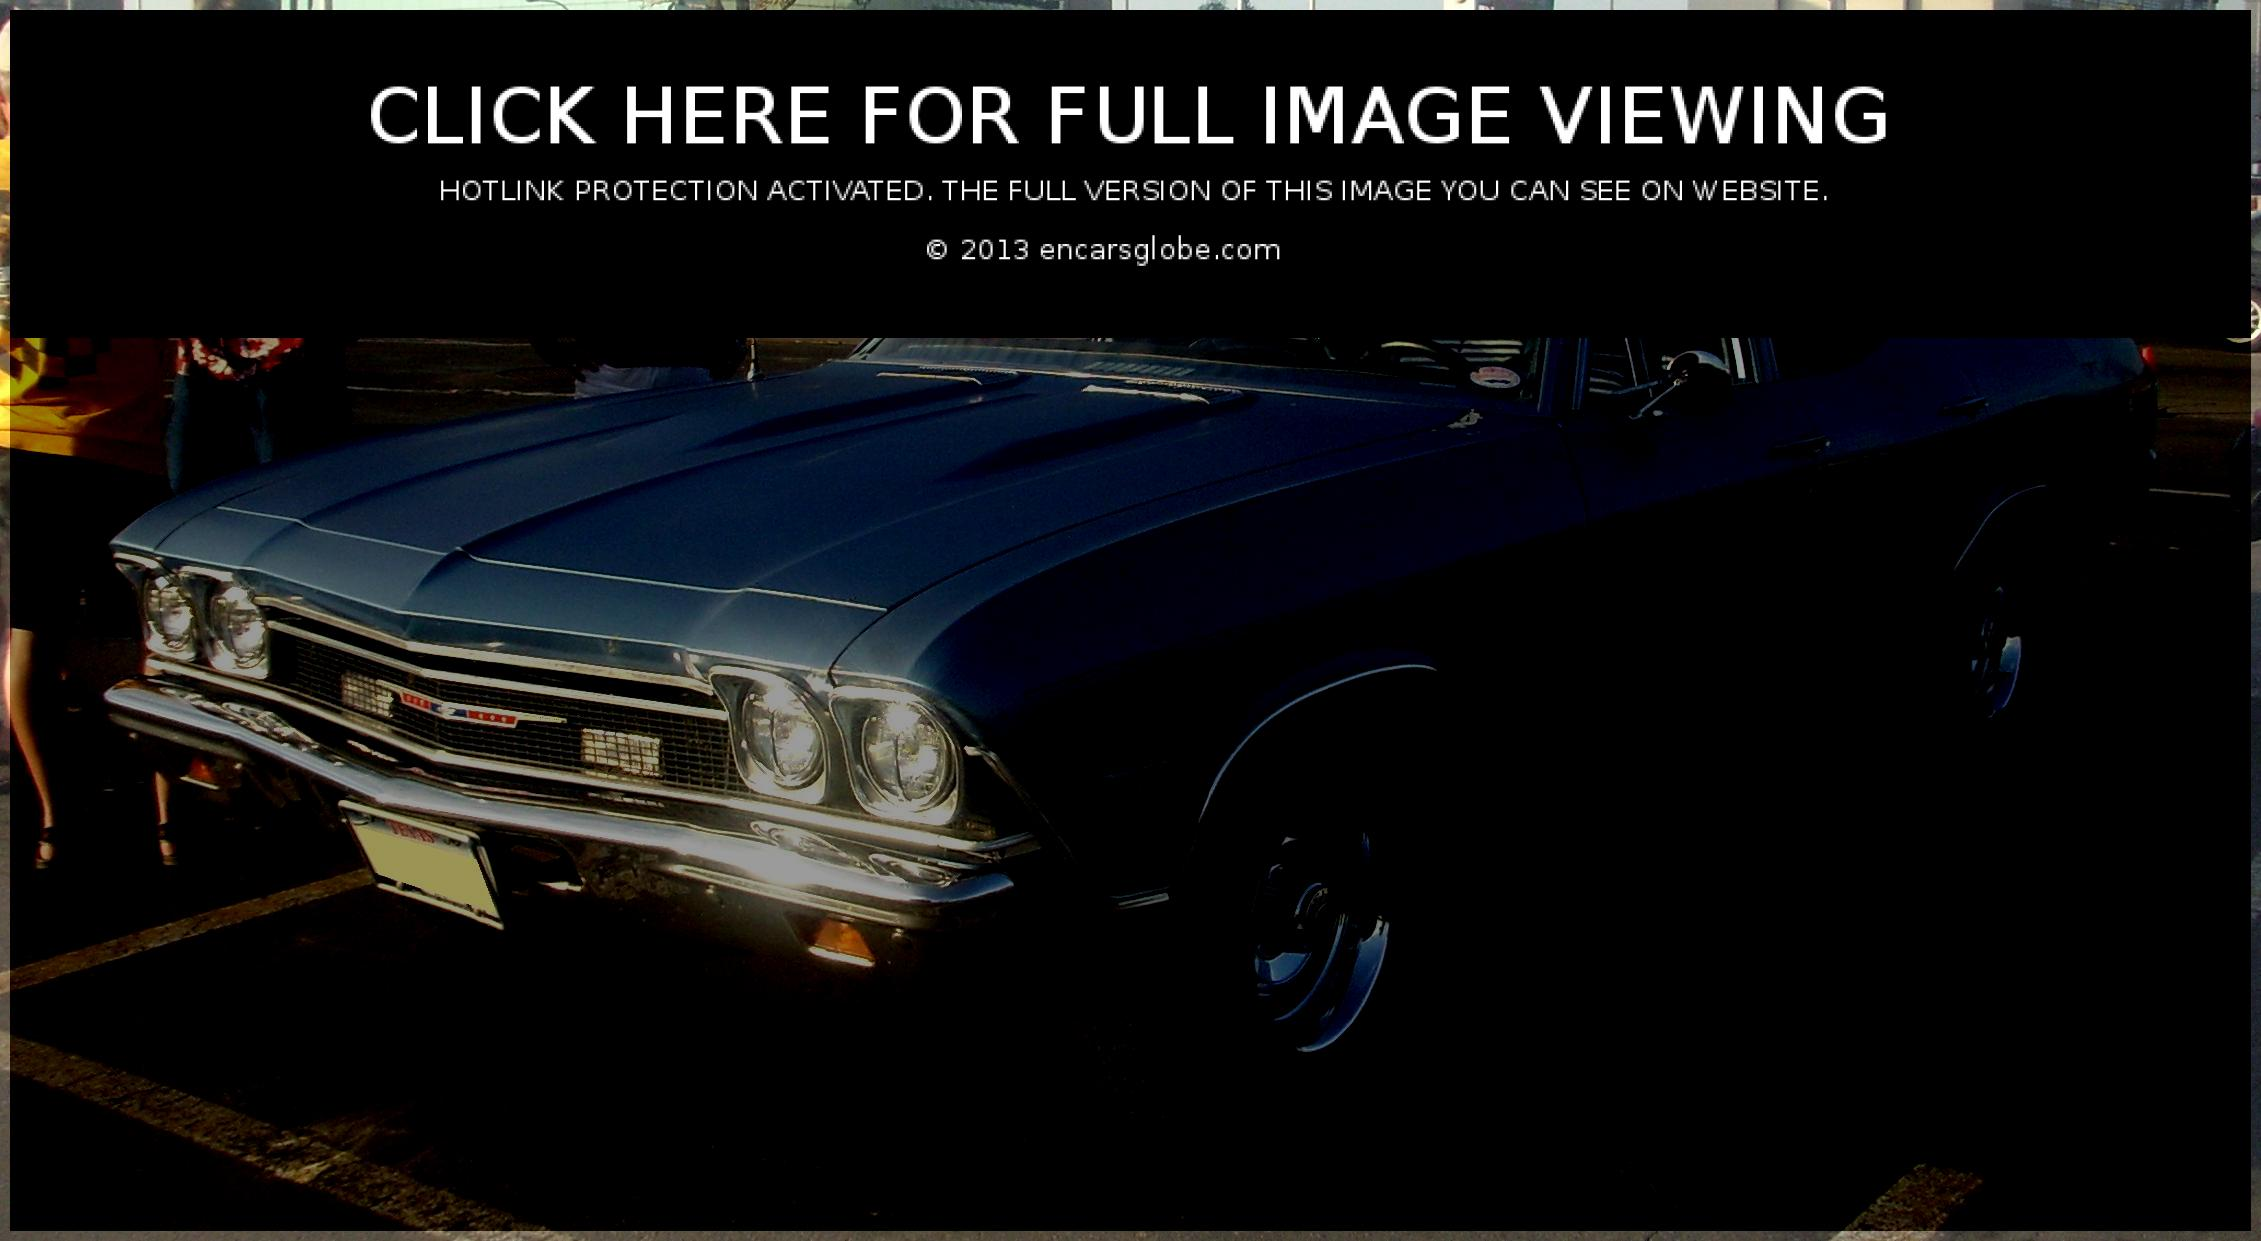 Chevrolet Opala 2500 Coupe Photo Gallery: Photo #11 out of 11 ...